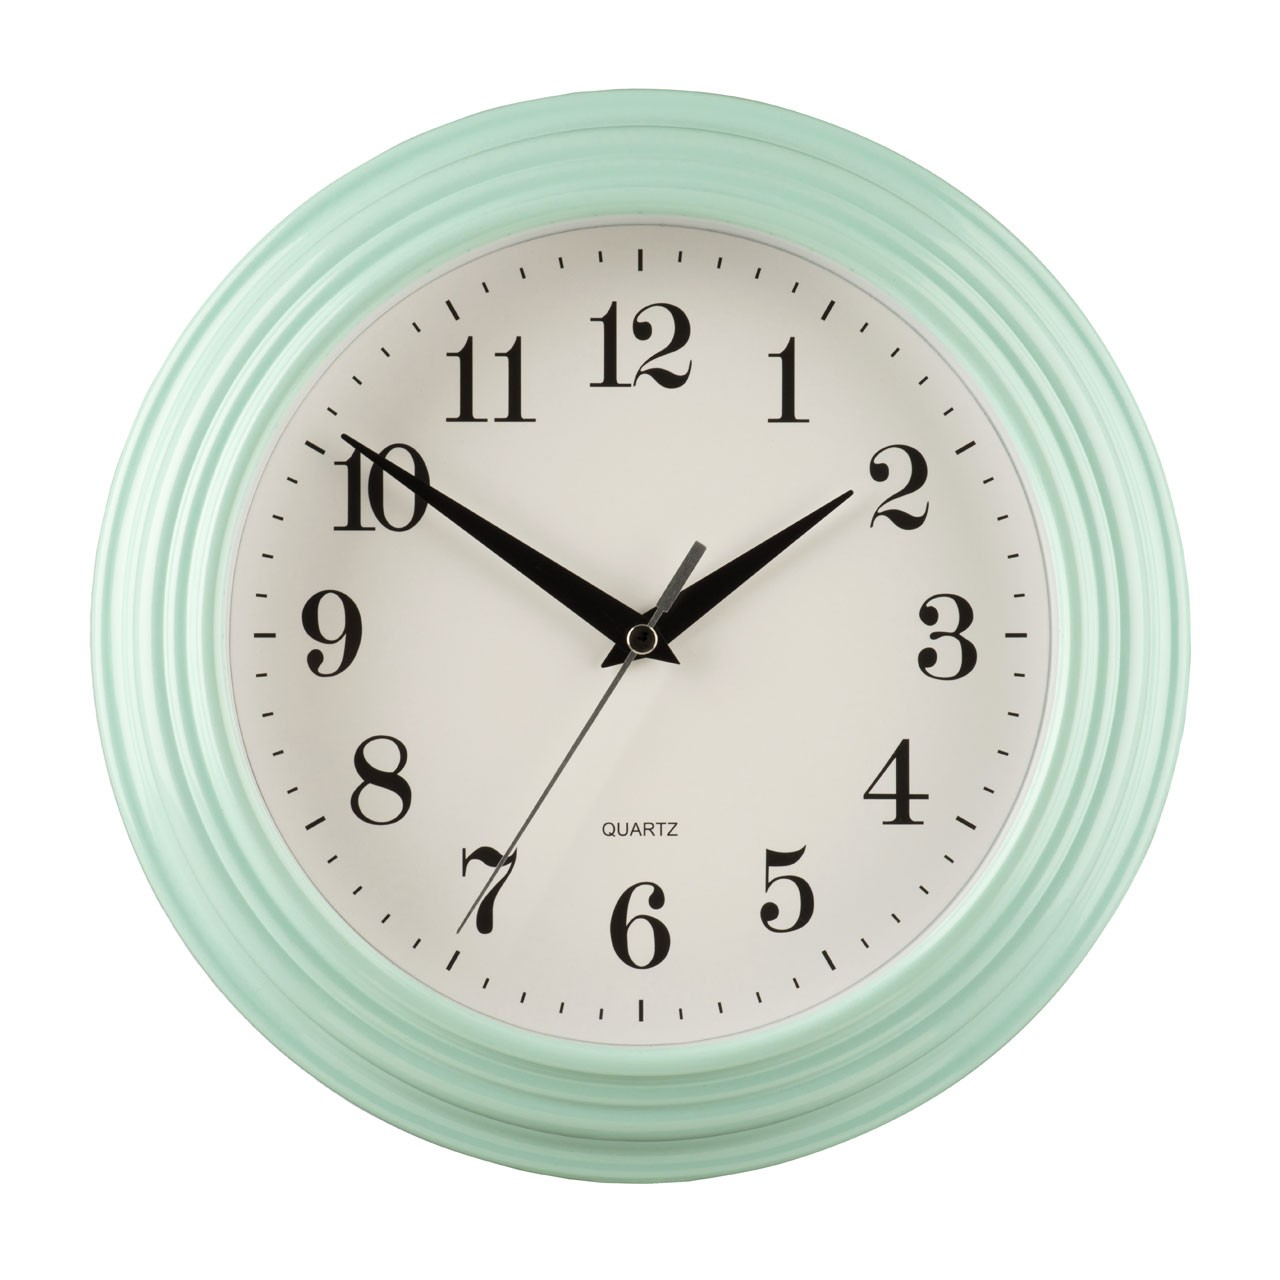 Prime Furnishing Wall Clock - Pale Blue